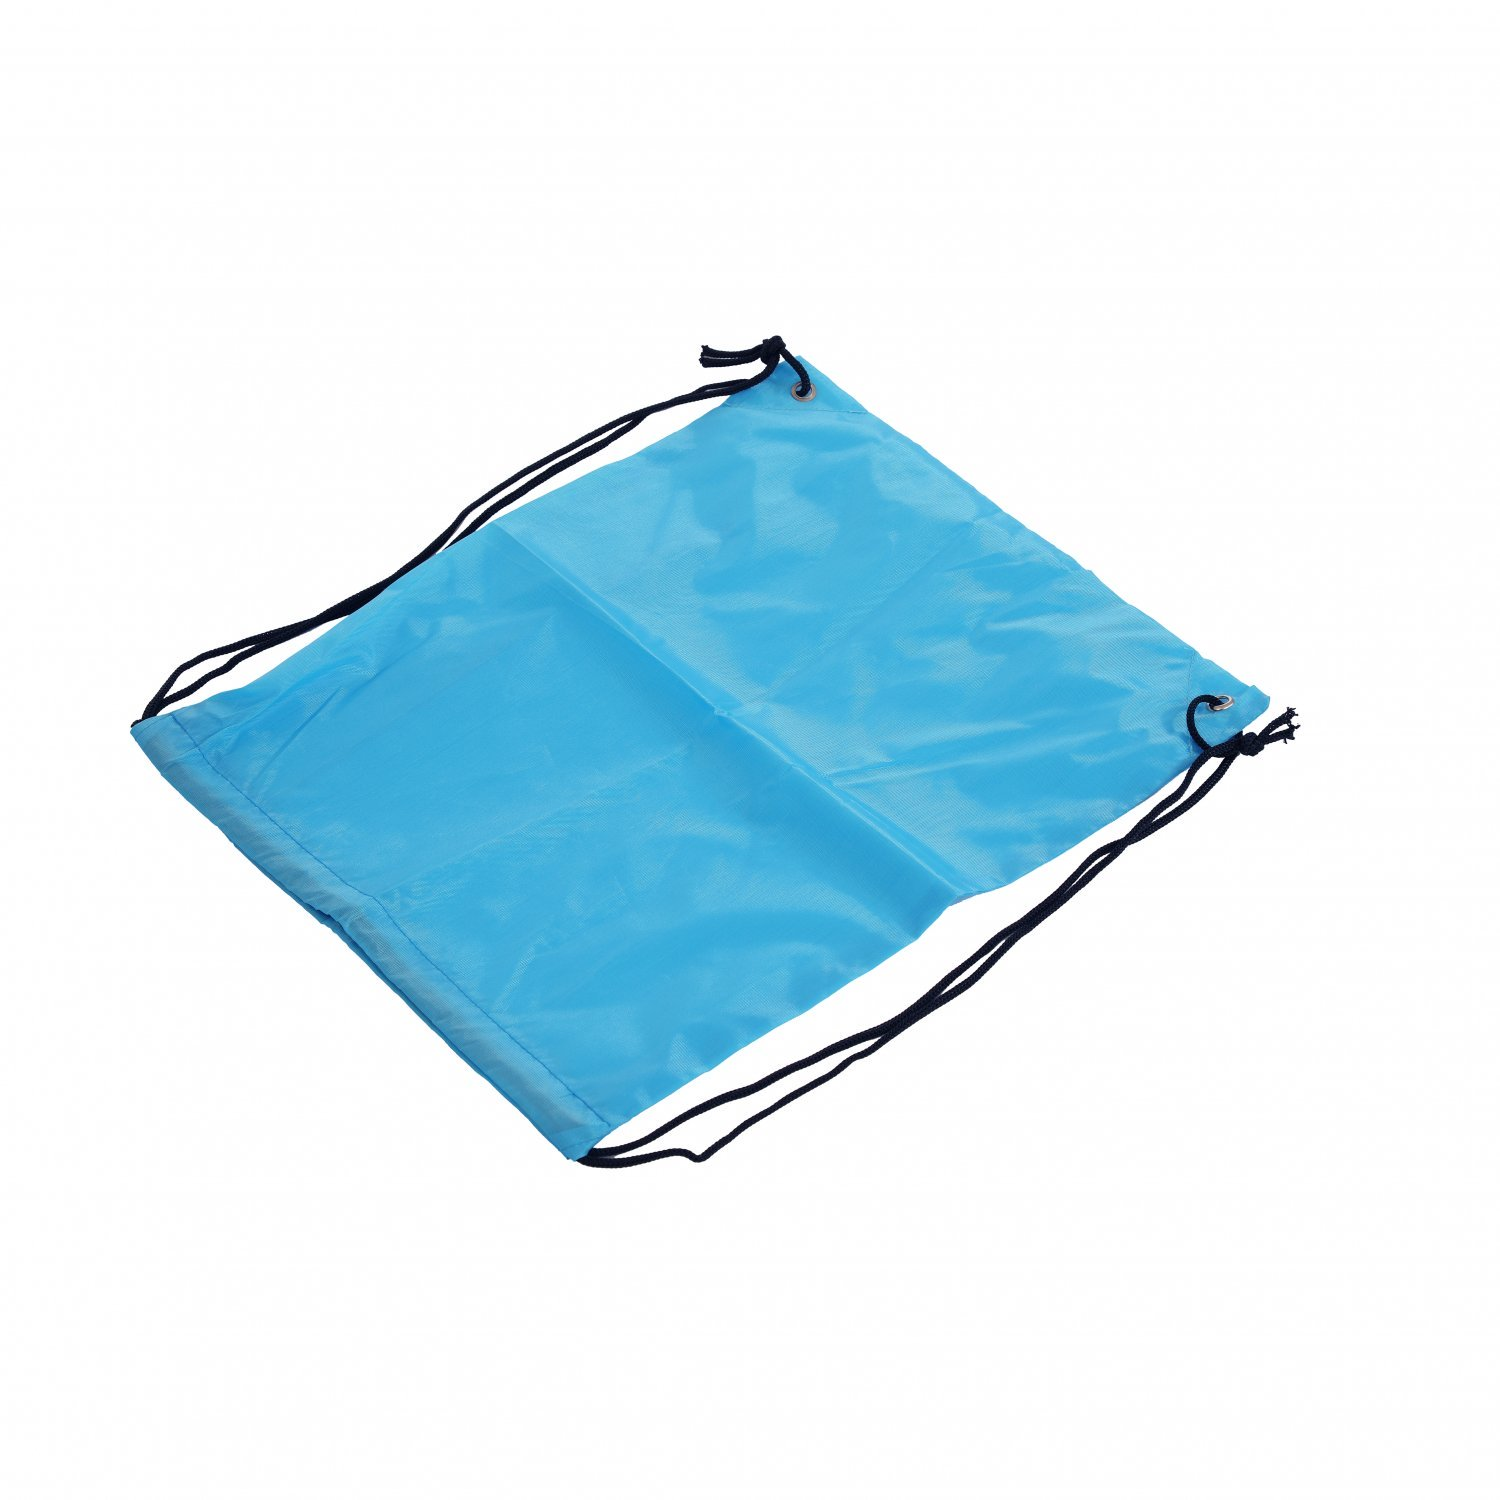 Oxford Cloth Sports PE Ocean Blue Laundry Drawstring Bag